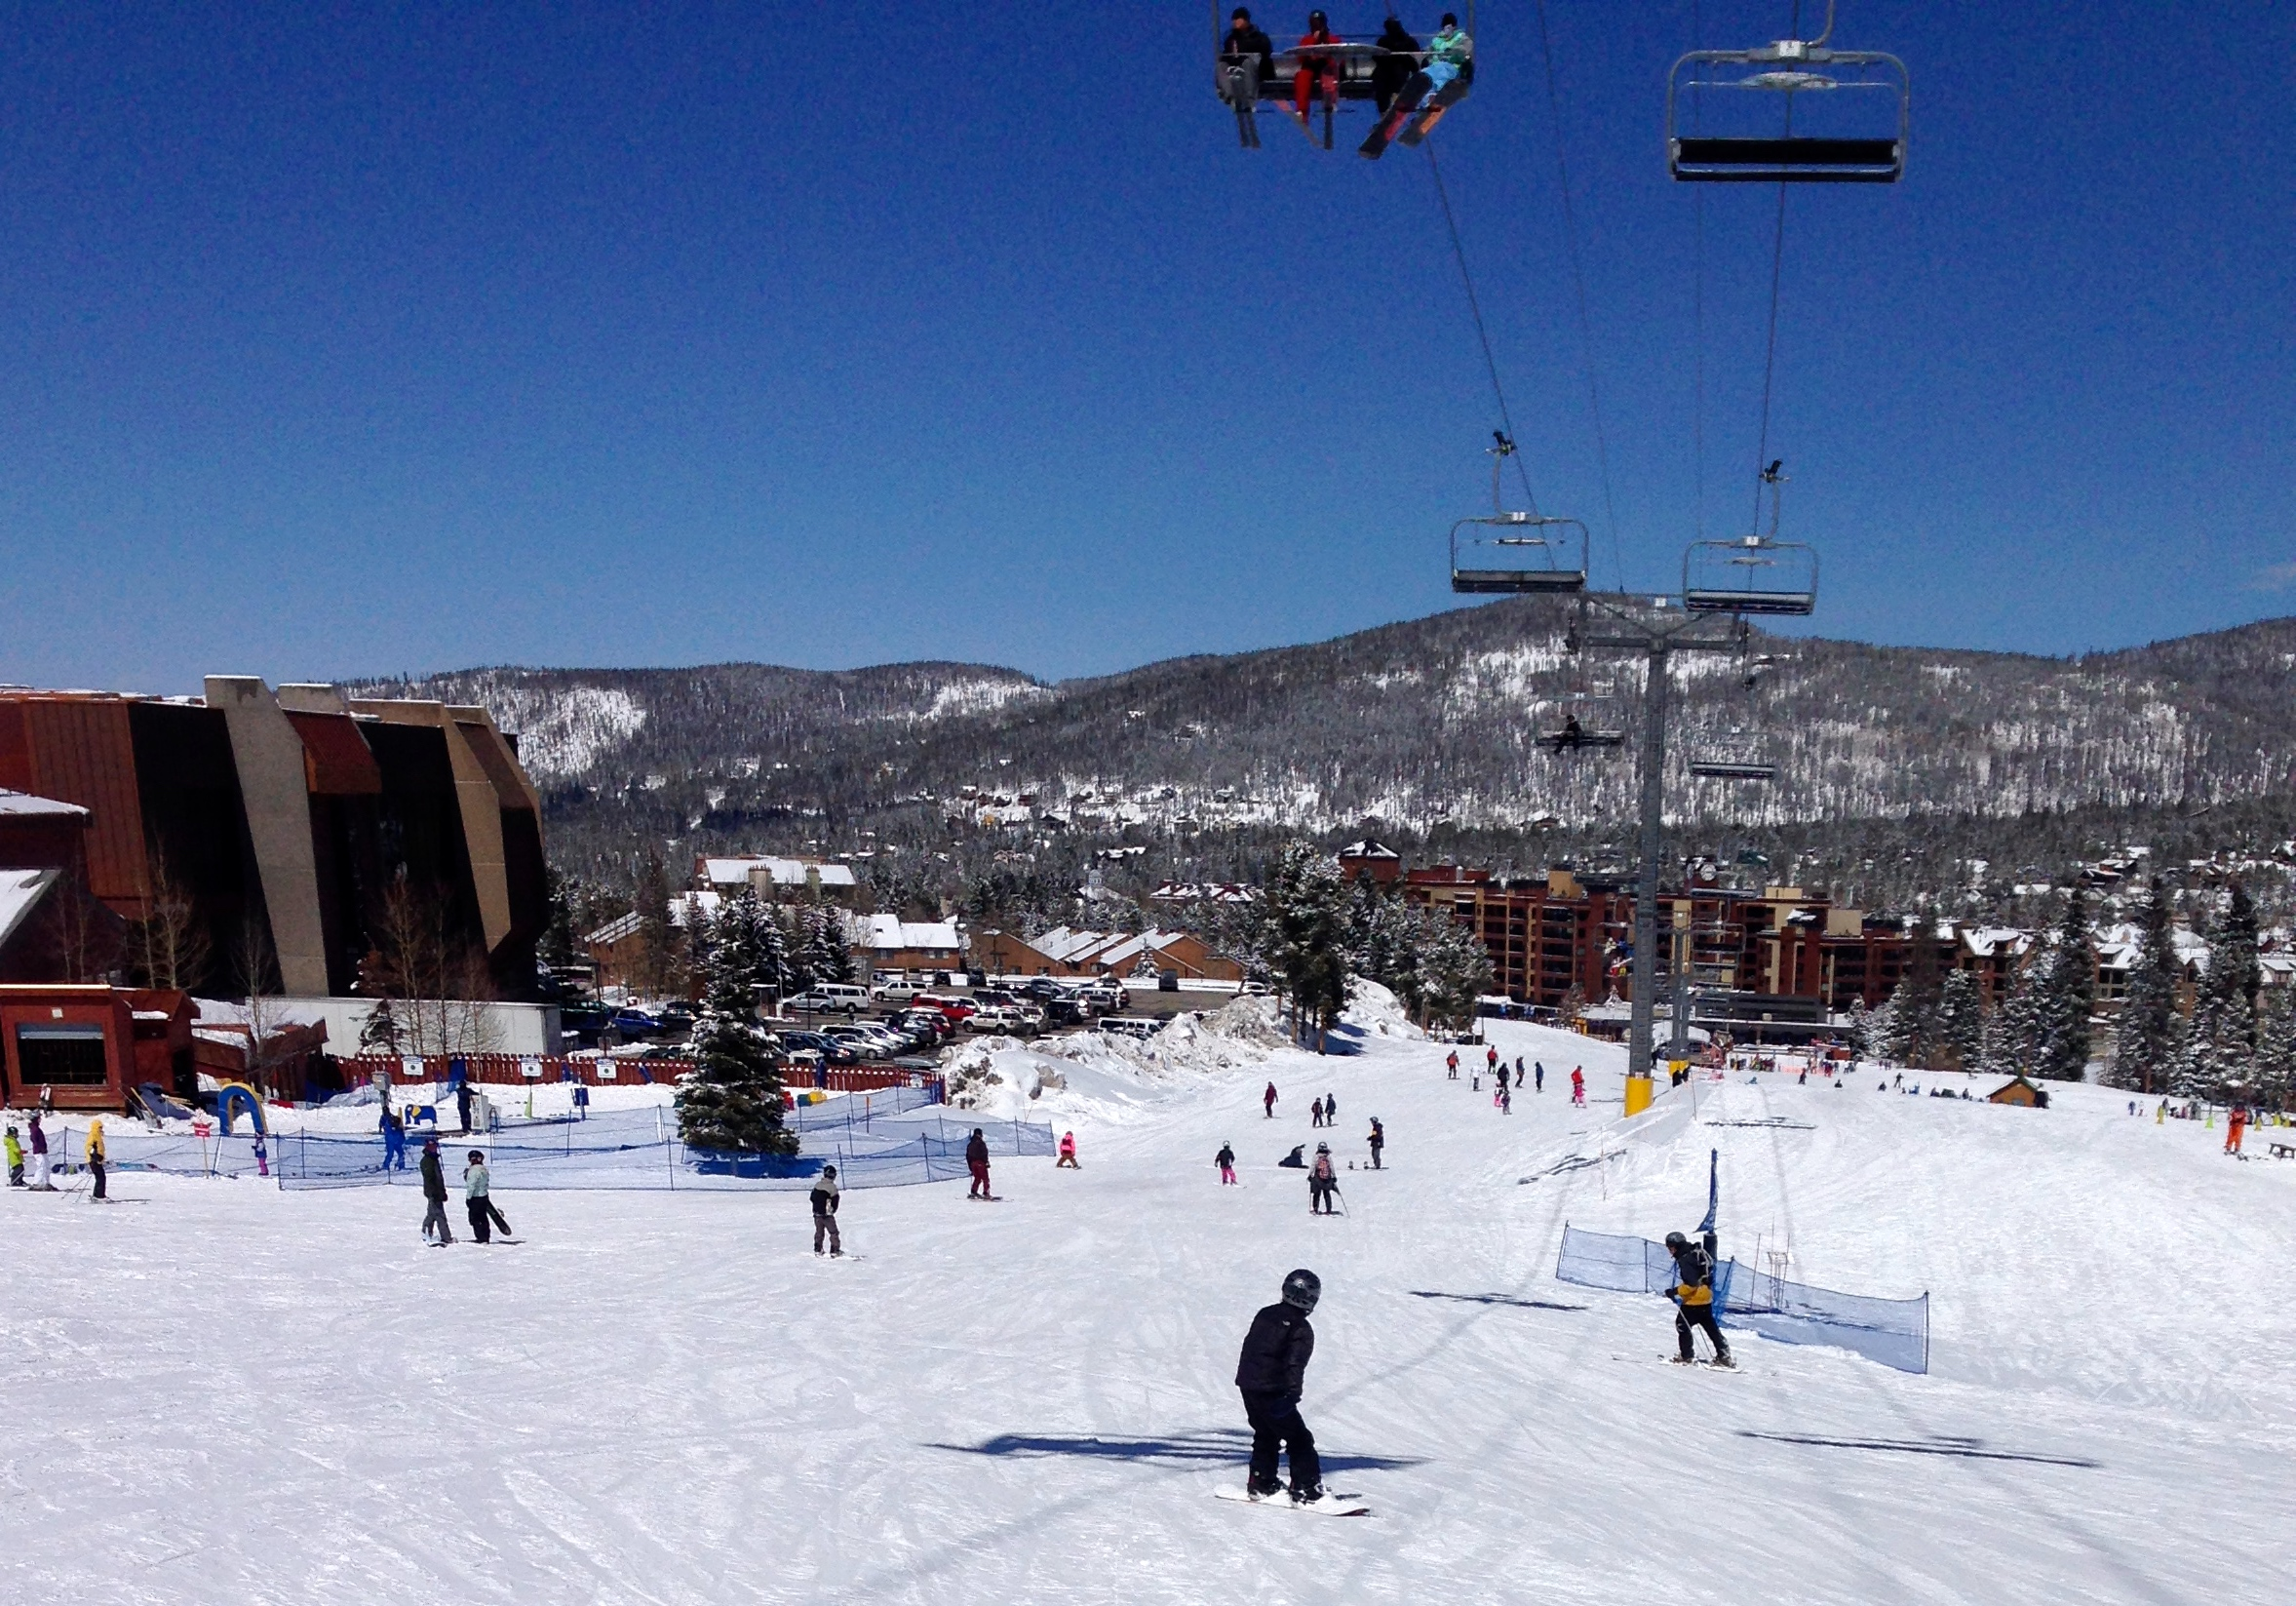 A beautiful spring day at Breckenridge Ski Resort